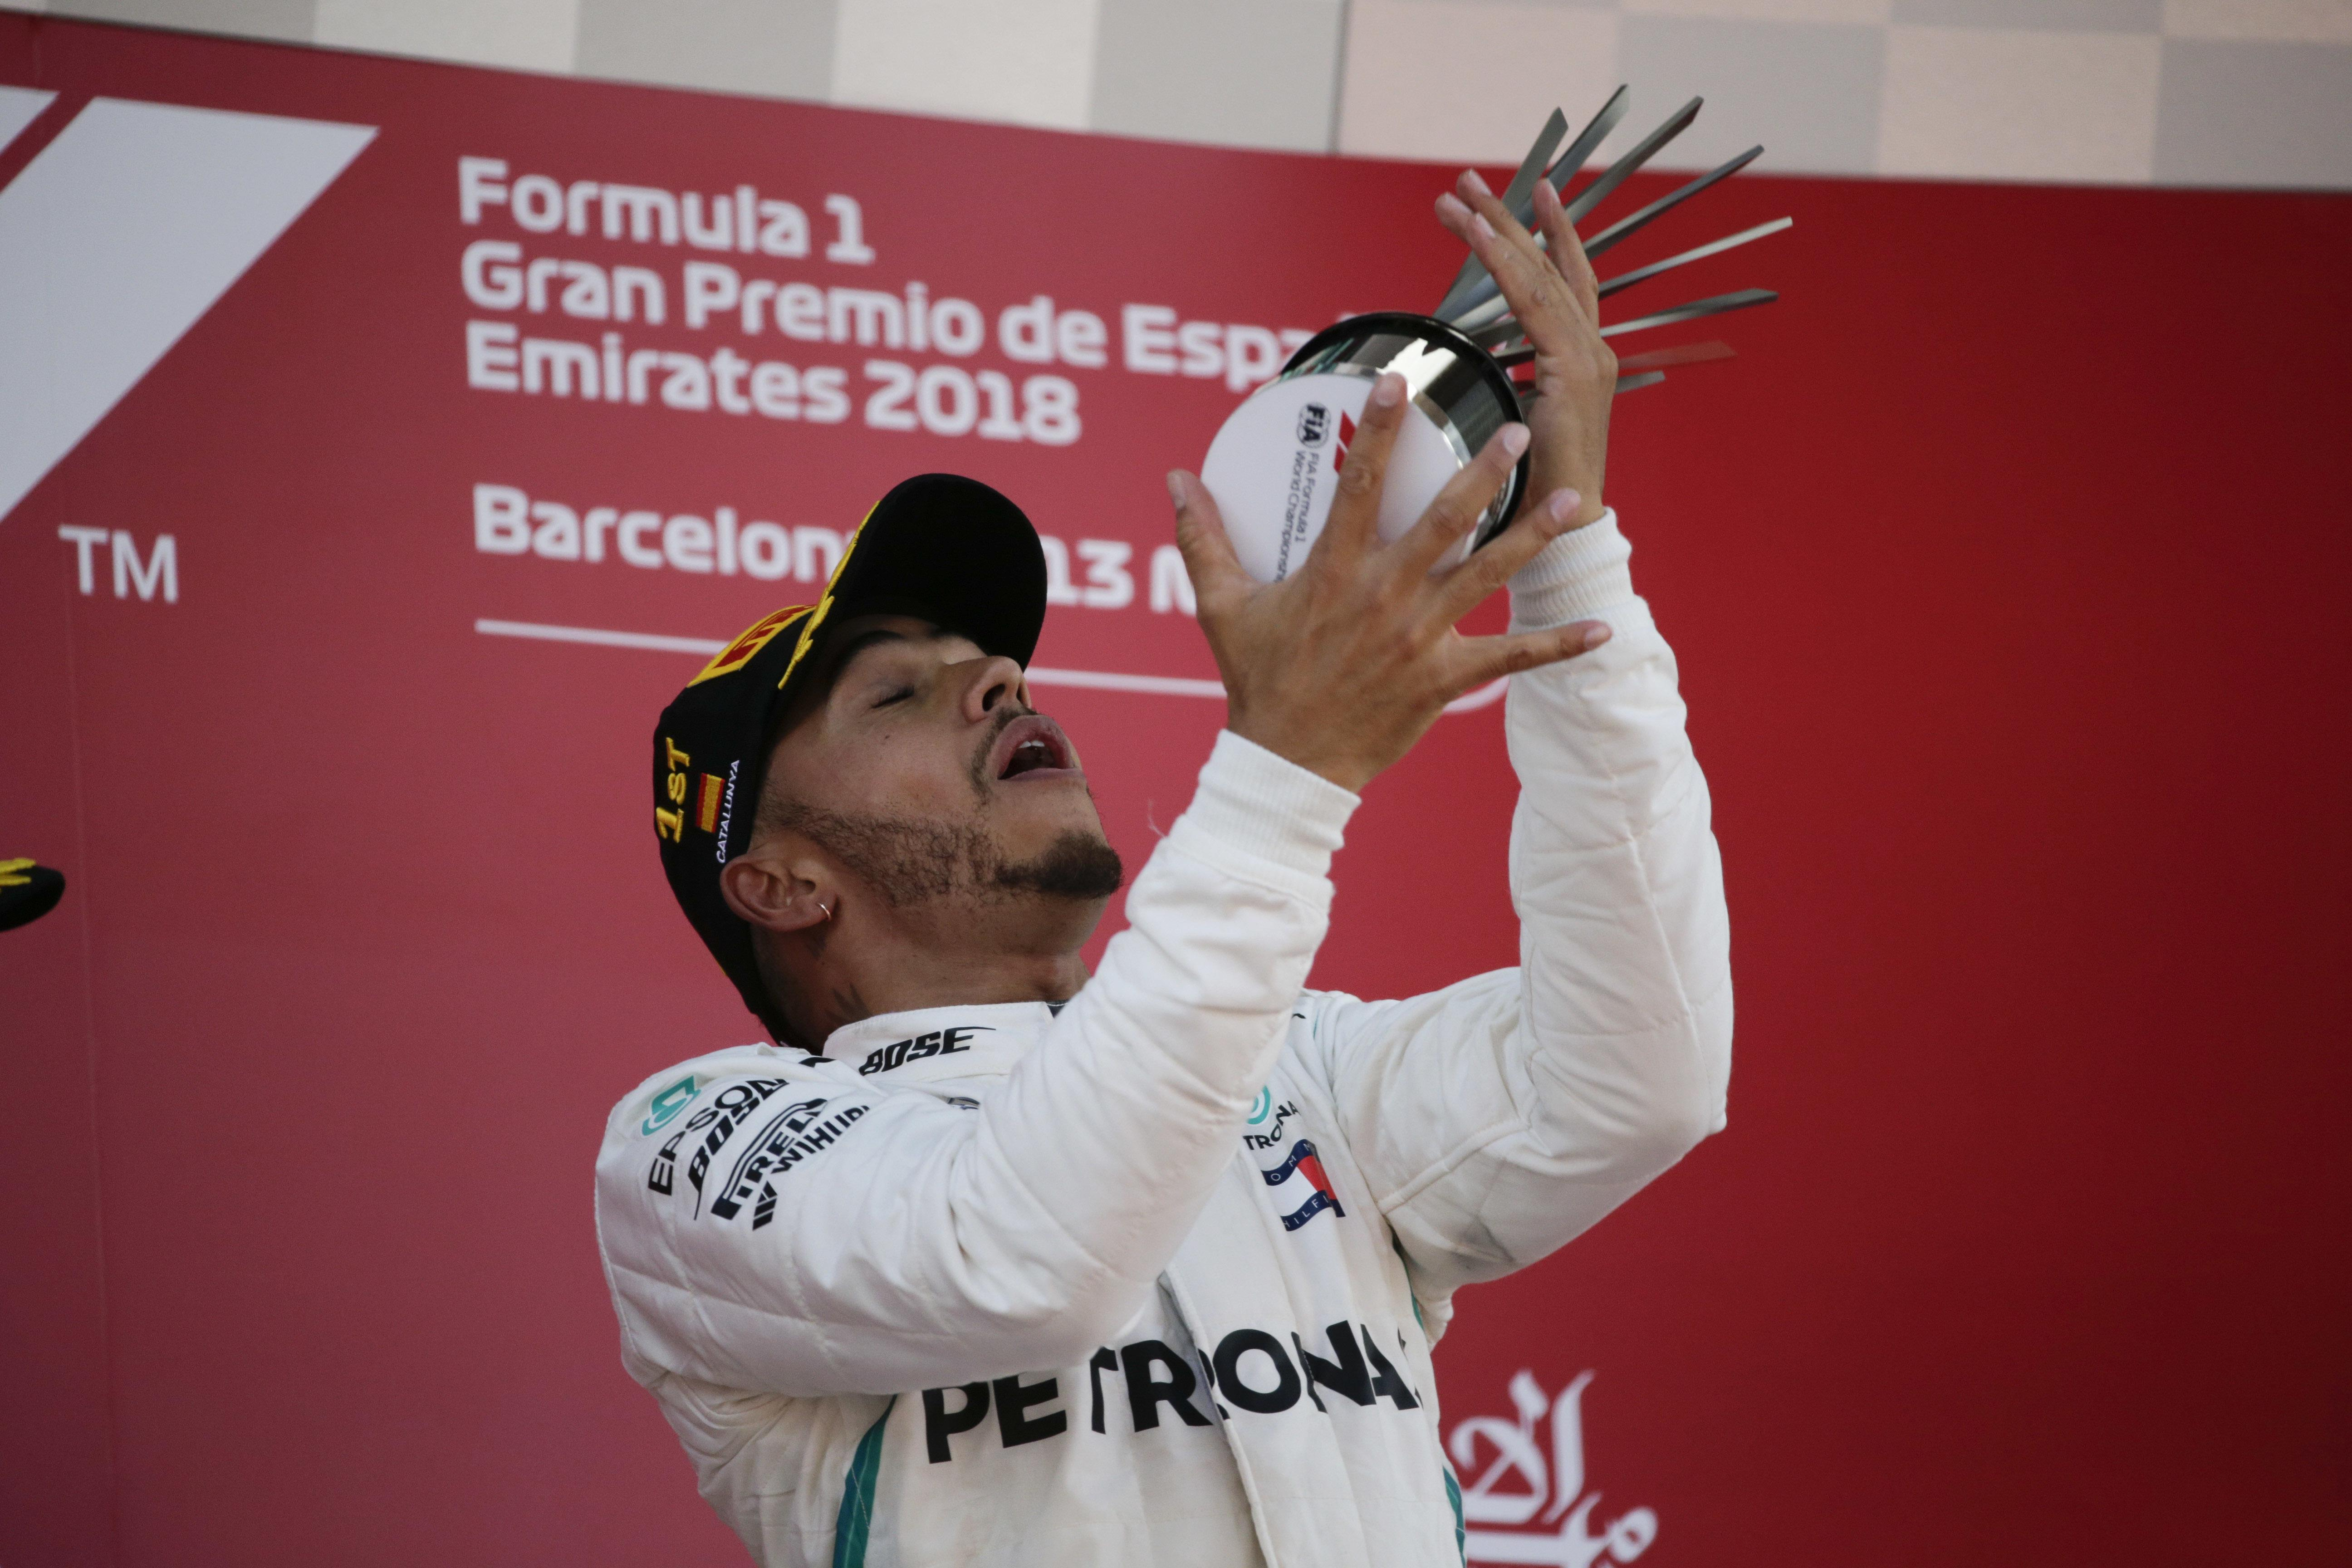 Lewis Hamilton gets to grips with his trophy after winning the Spanish GP in style